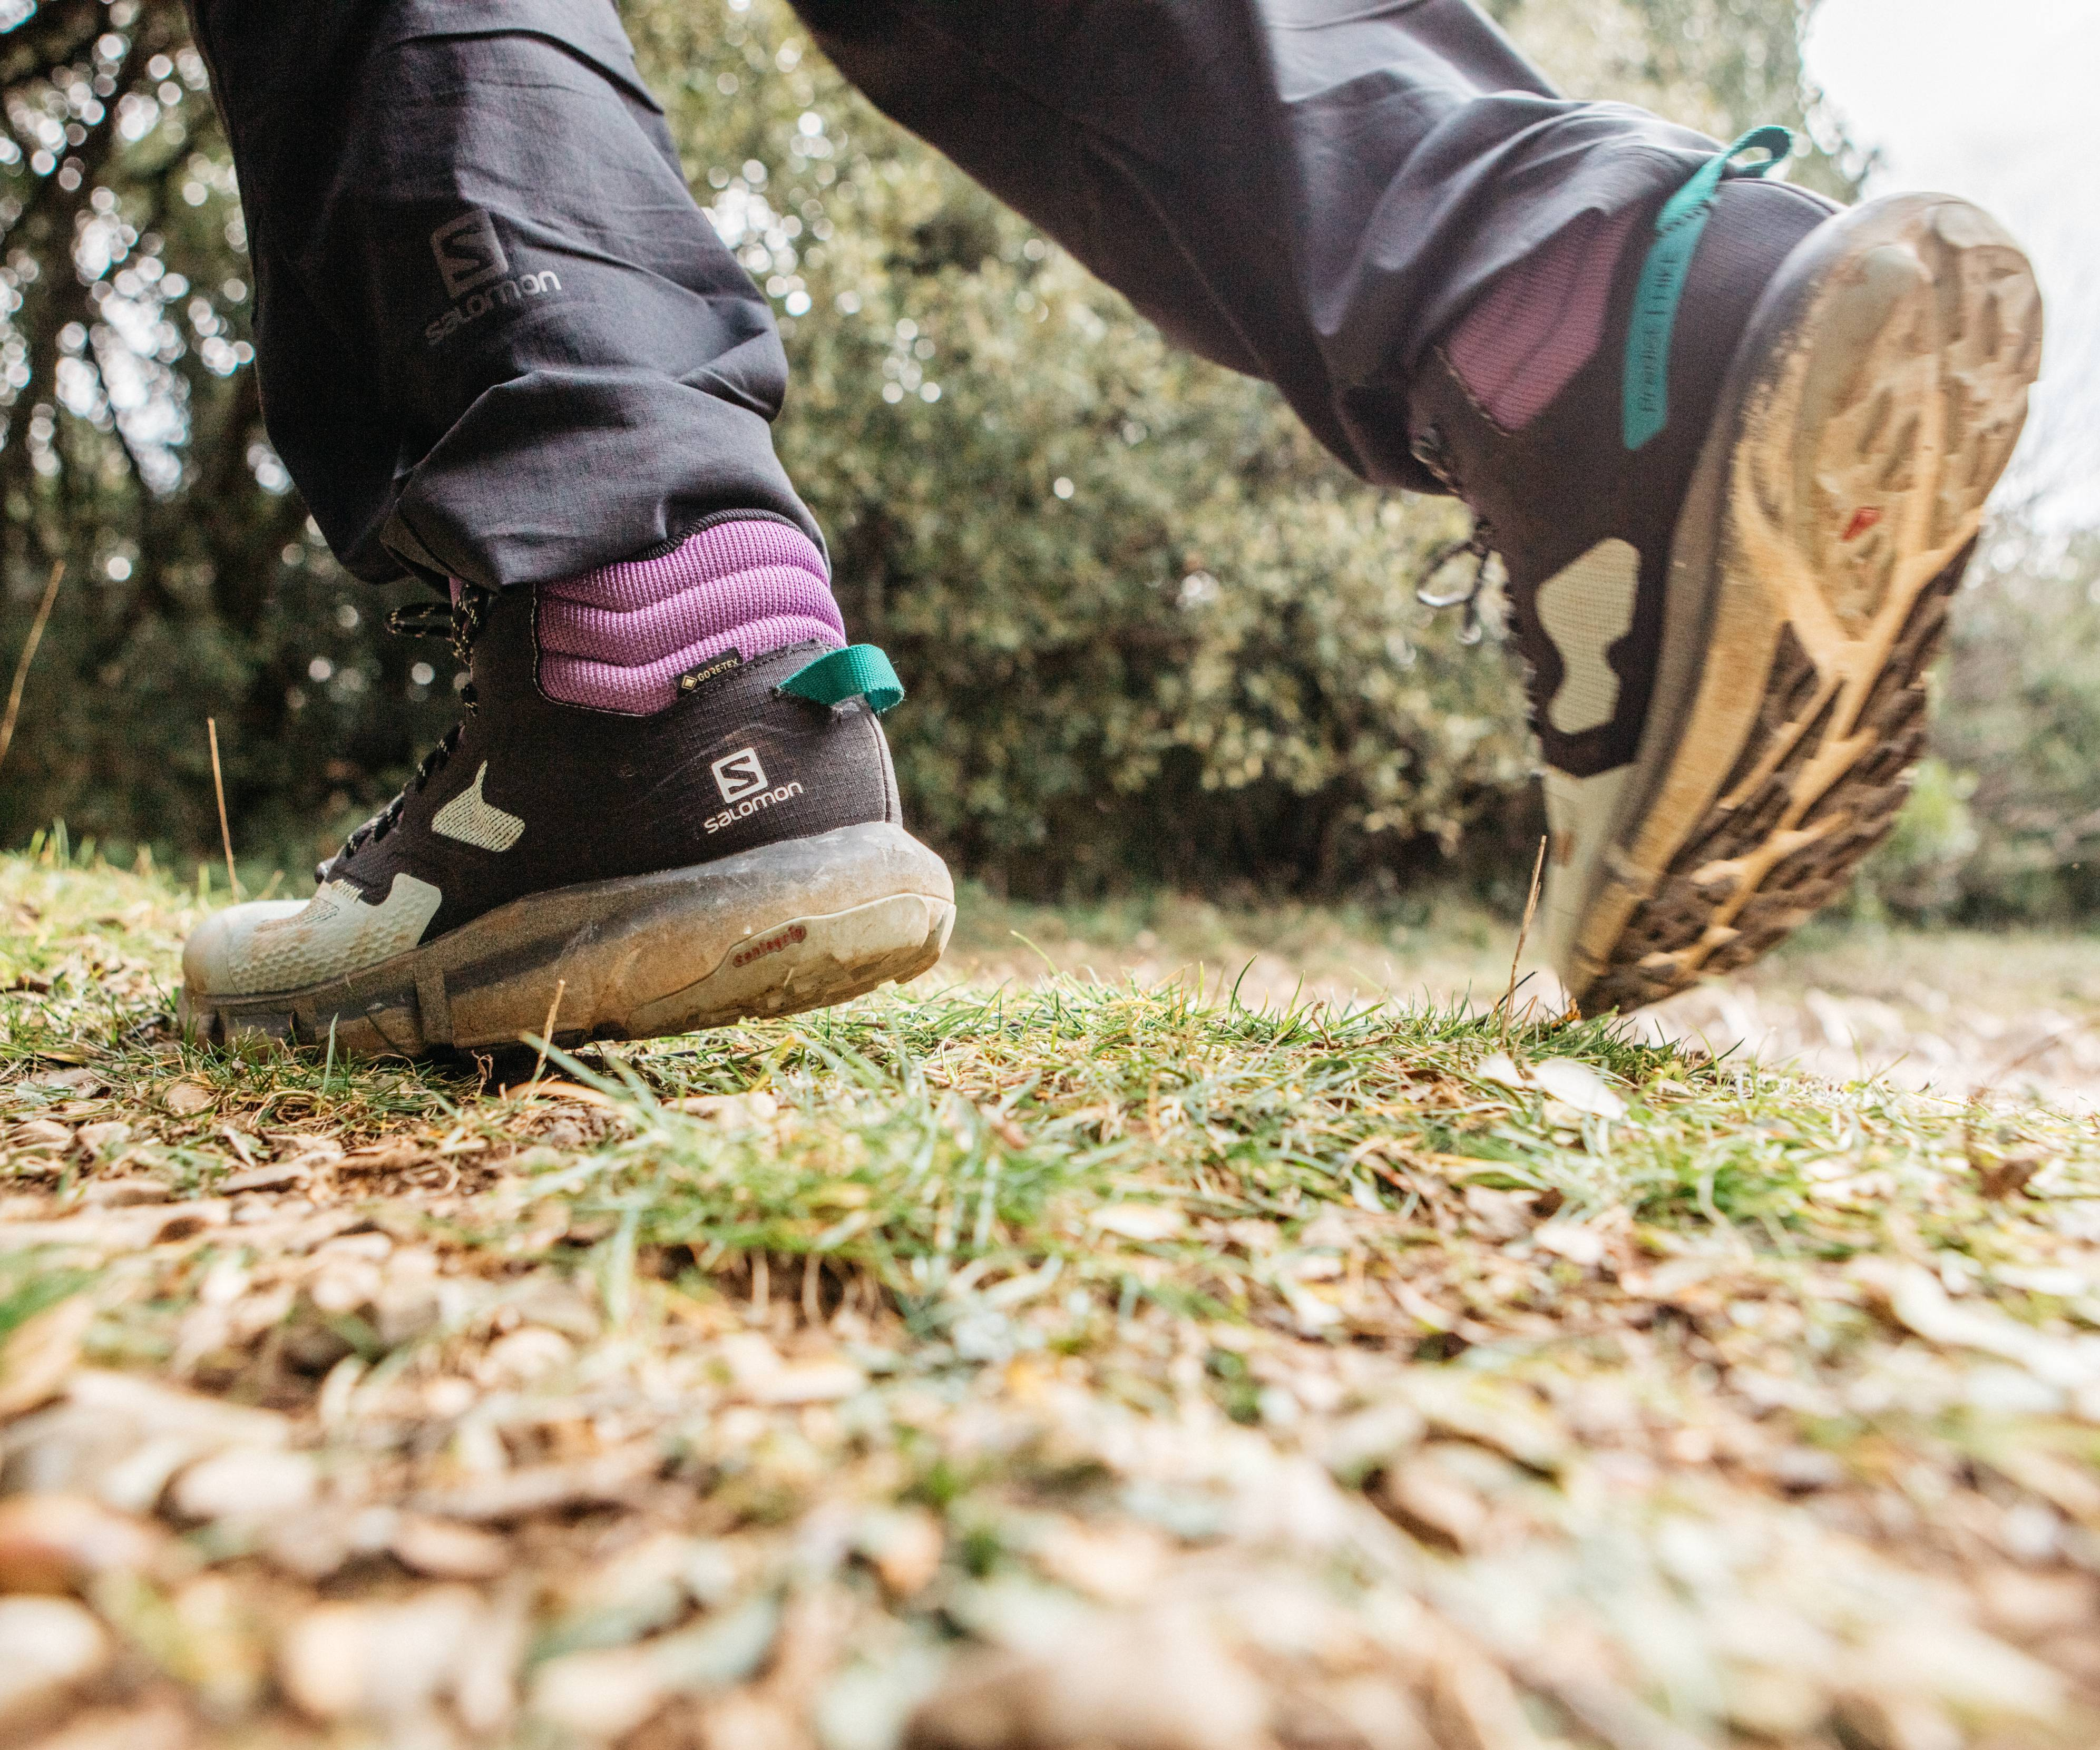 What makes comfortable hiking boots